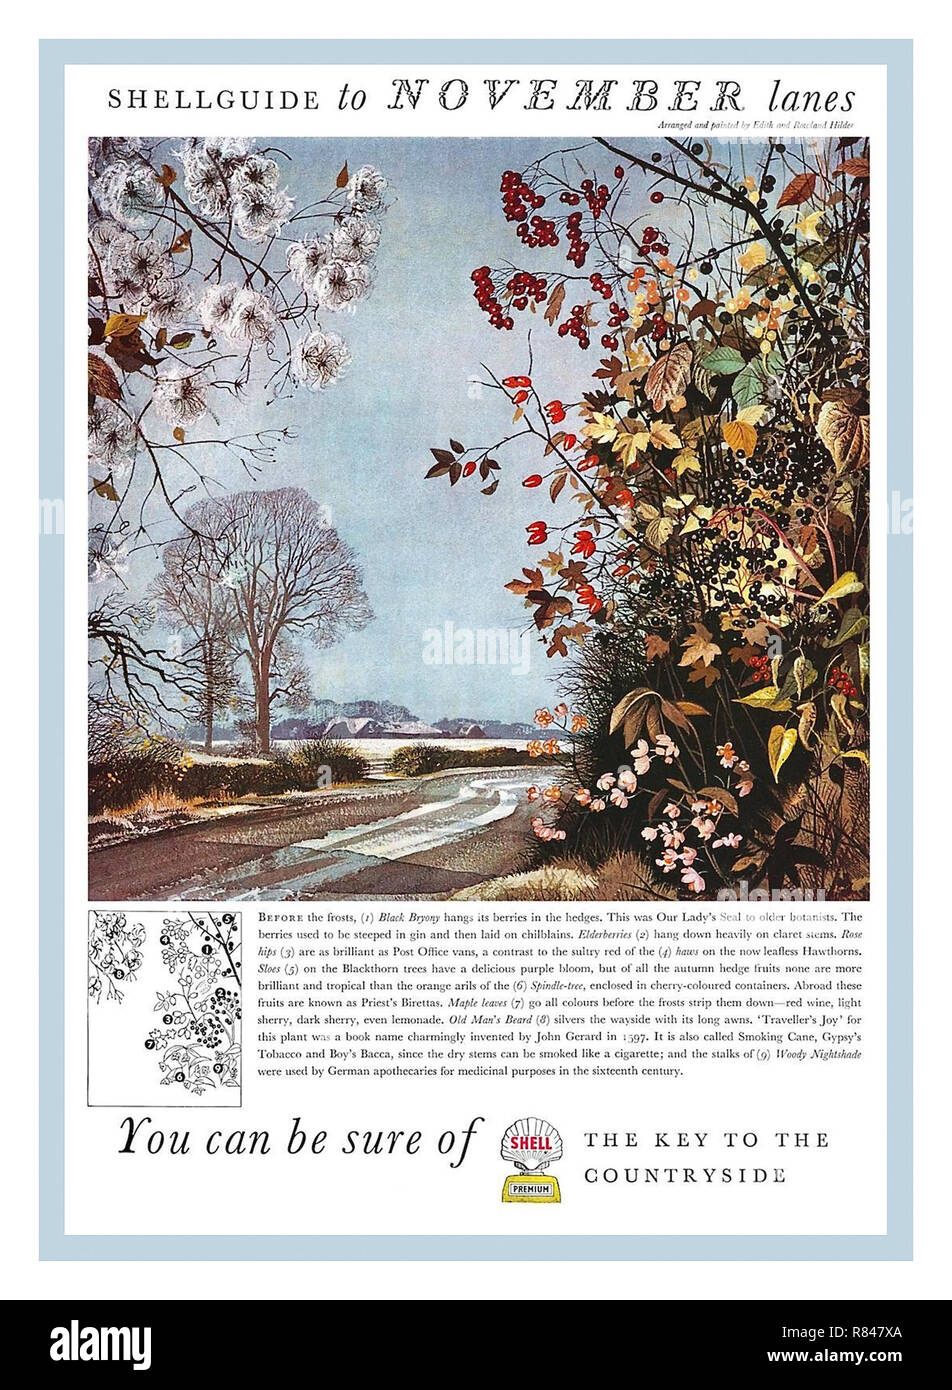 Vintage Press Advertisement 1950s Shell Oil Company advertising posters. NOVEMBER SHELL GUIDES AUTUMN adverts give a view of Britain as a lost rural idyl but they advertised not only petrol and oil but motoring in general and where it could take you – the exhilarating pleasure and joyous freedom of the countryside. - Stock Image